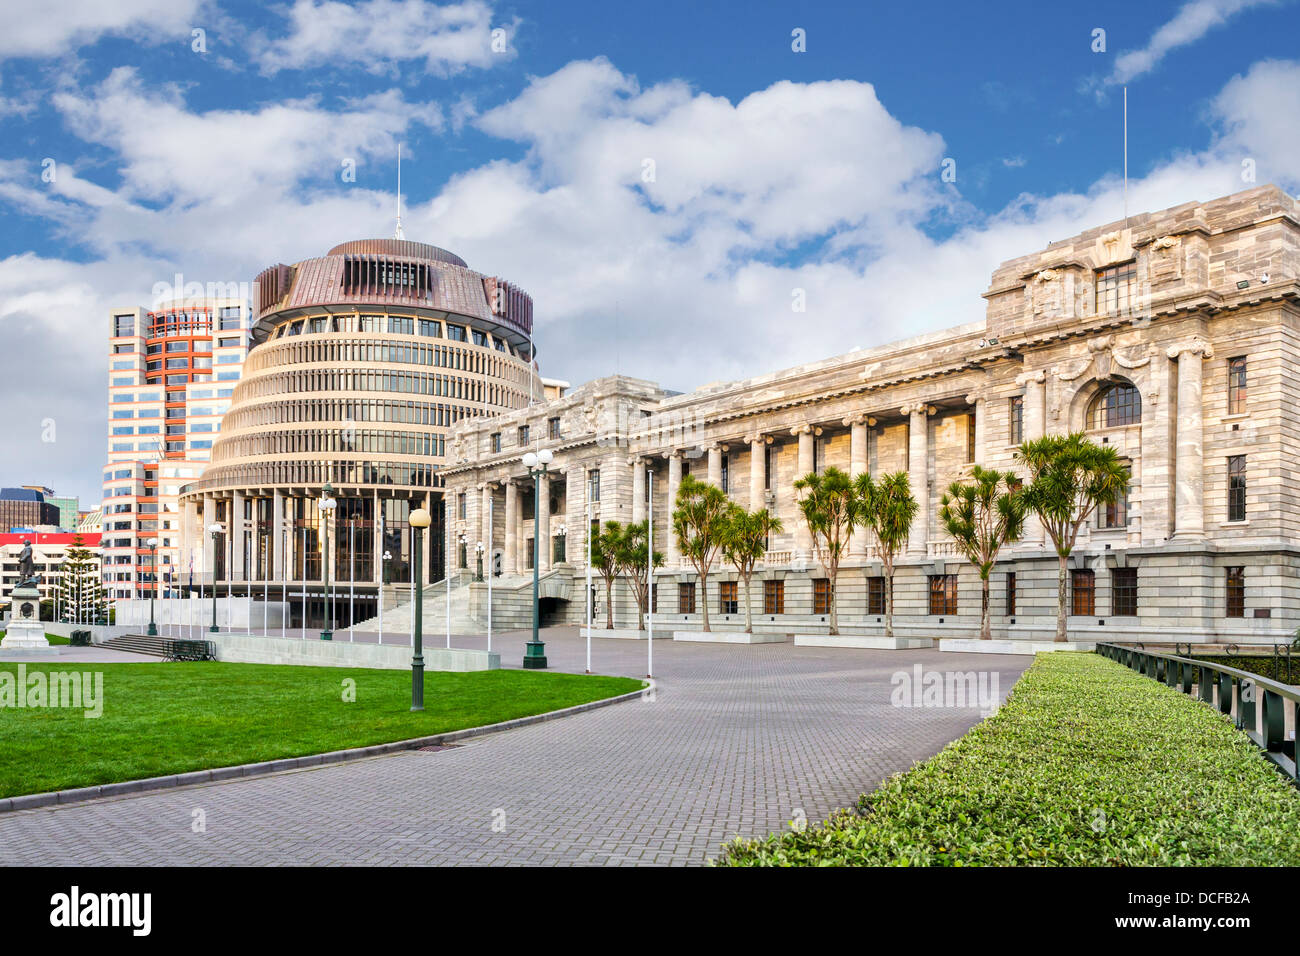 Parliament House and The Beehive, Wellington, New Zealand. - Stock Image